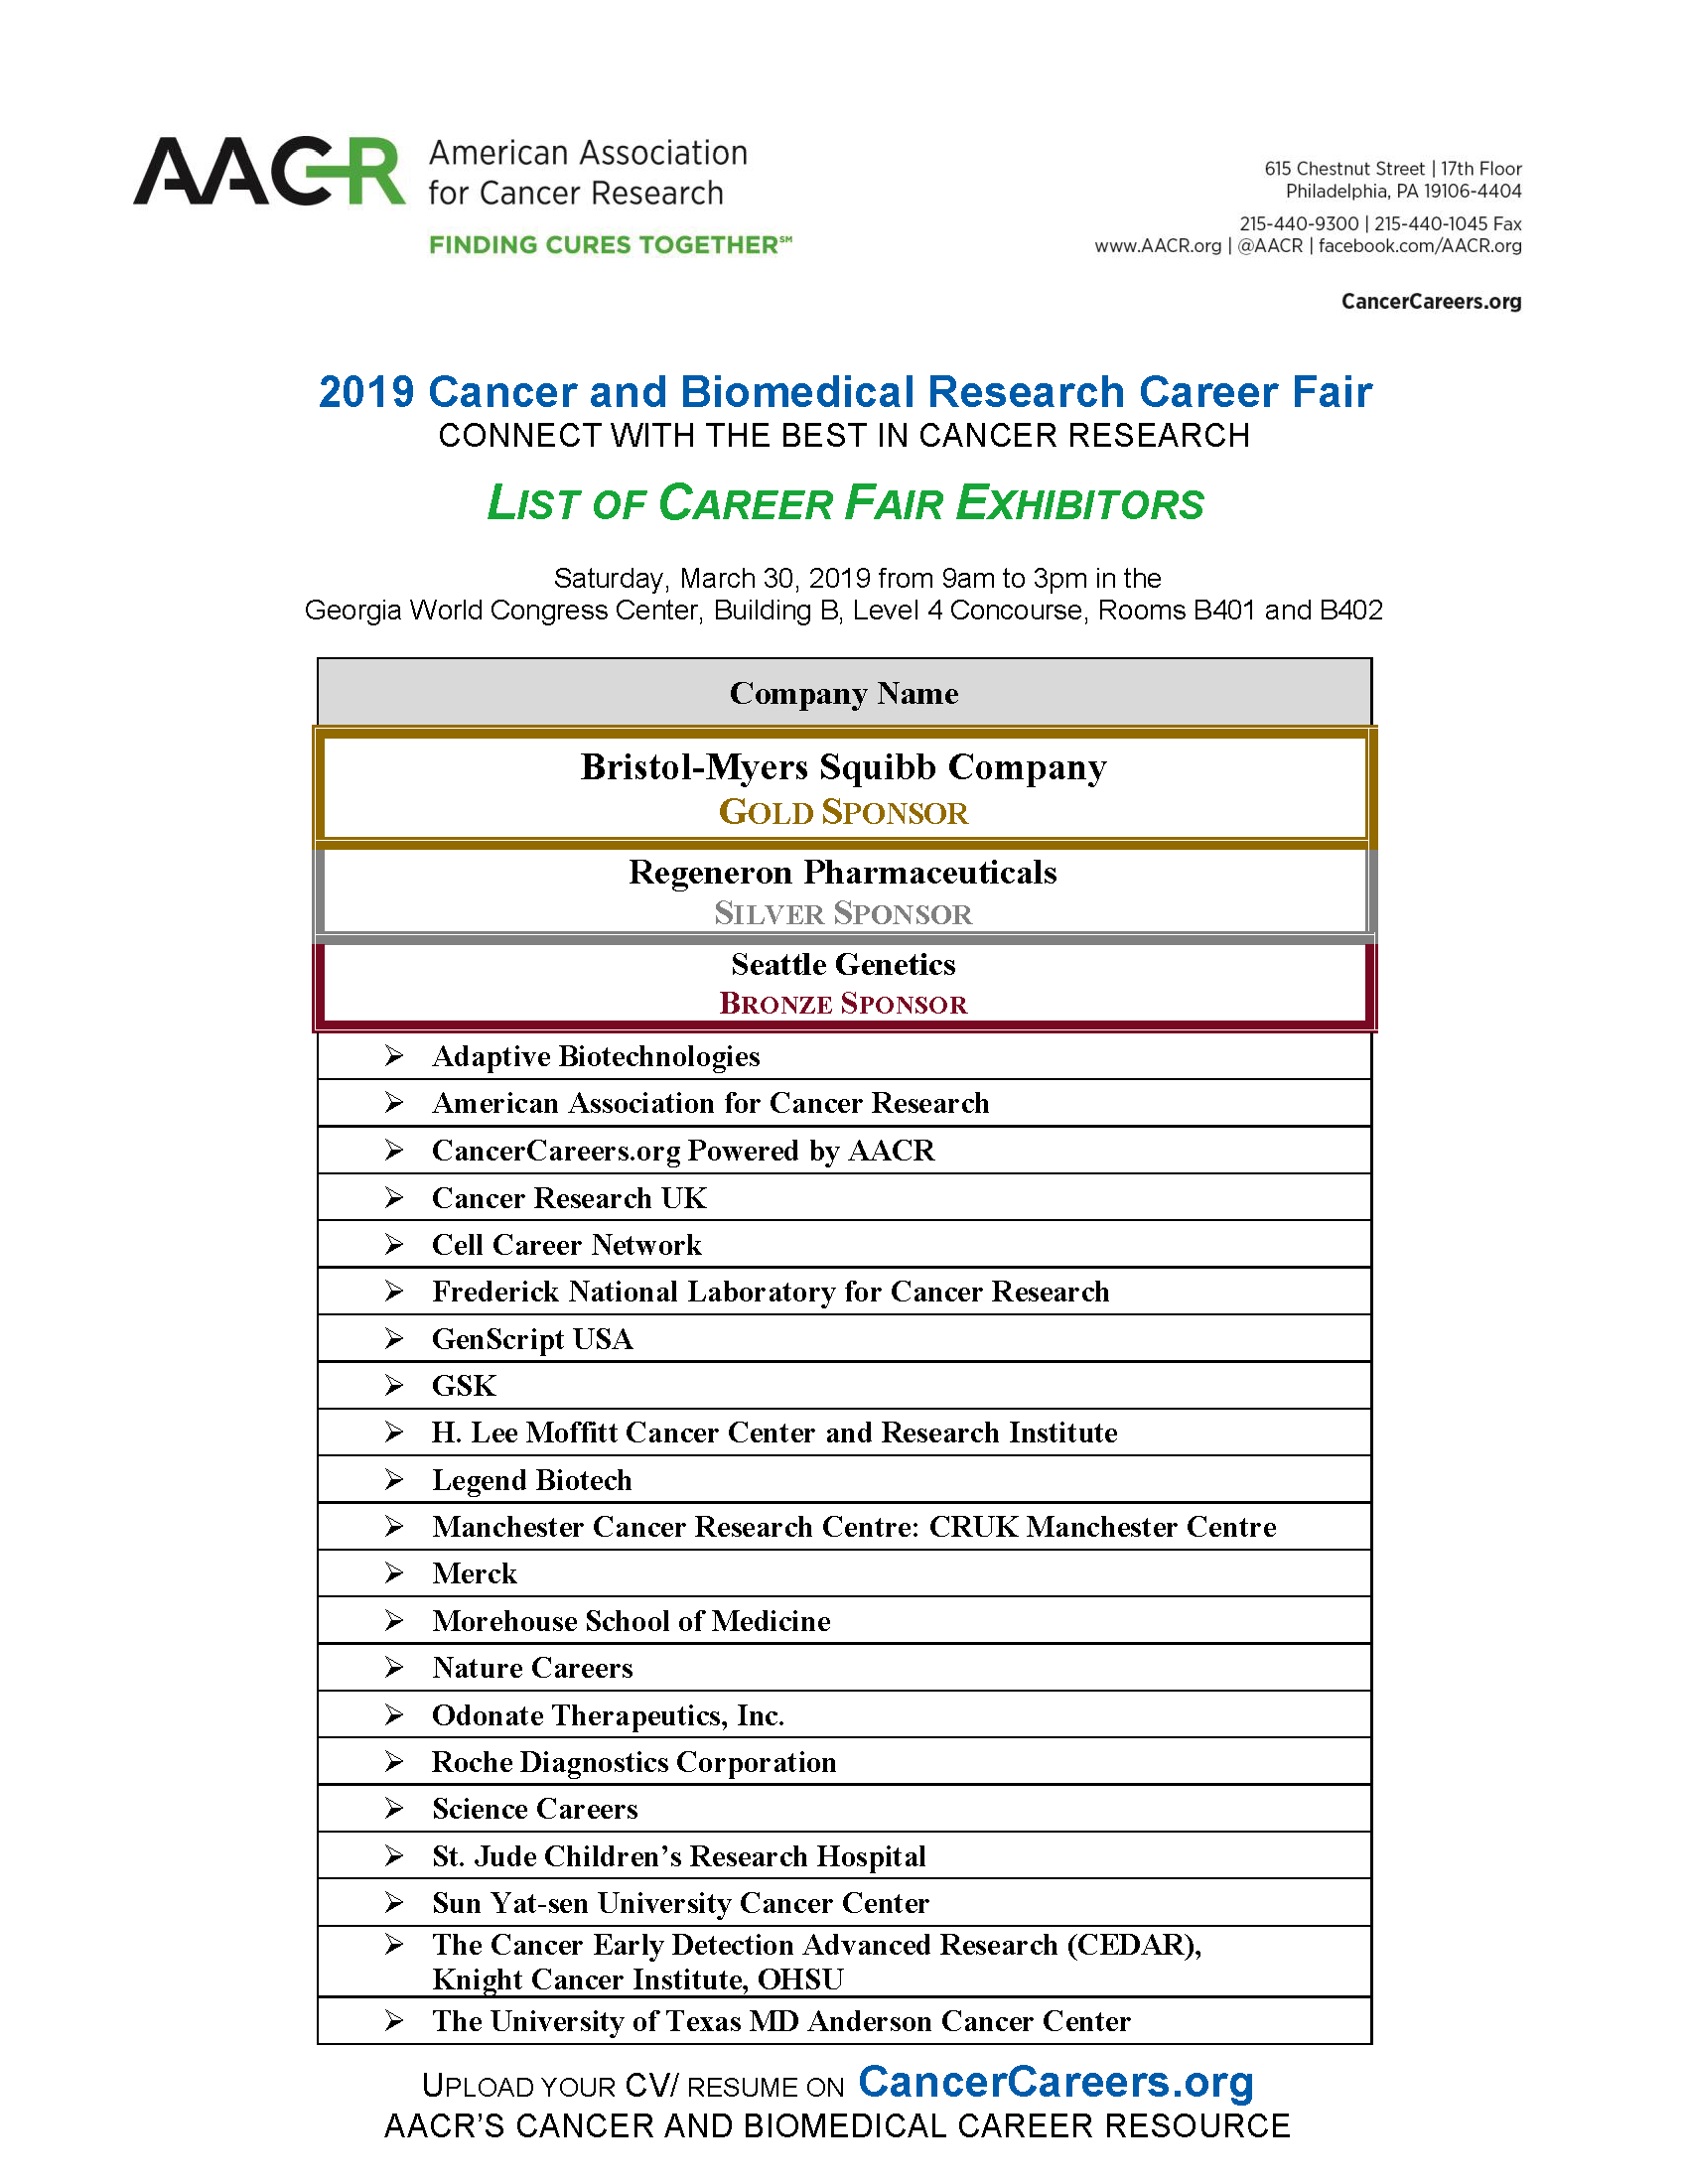 2019 List of Exhibitors | CancerCareers org